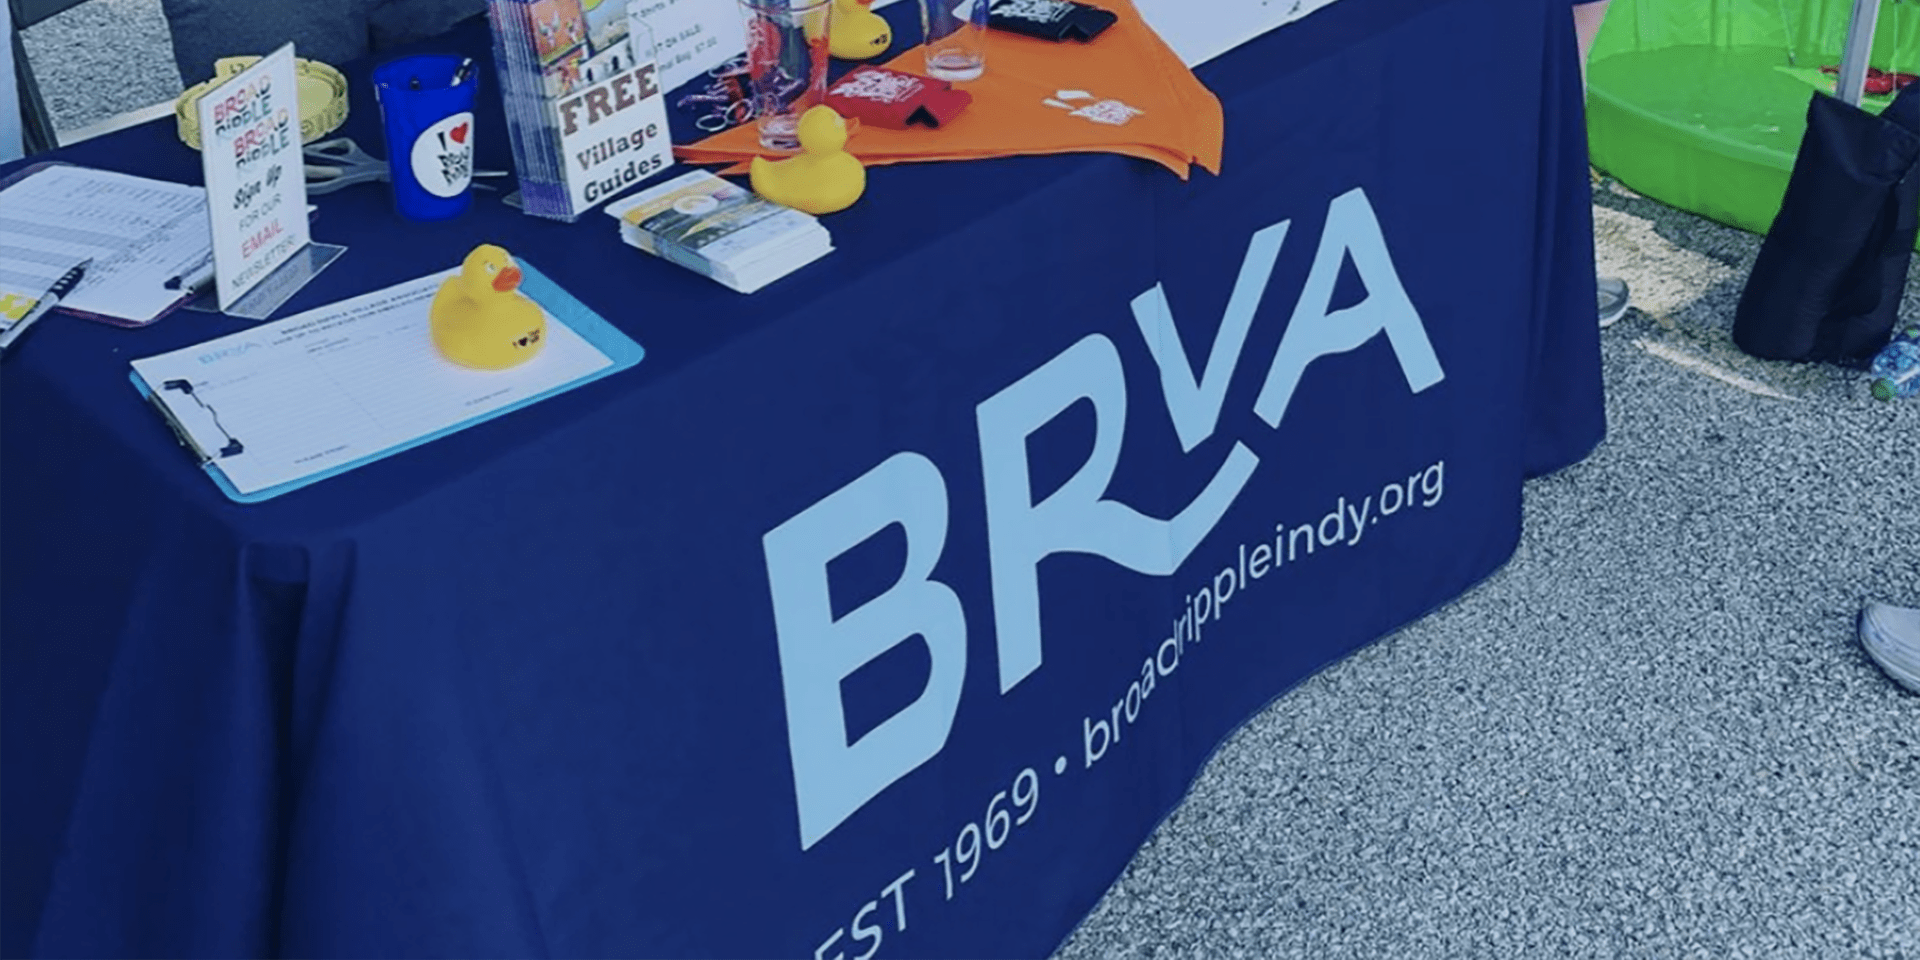 Join the BRVA and you might win a gift card!